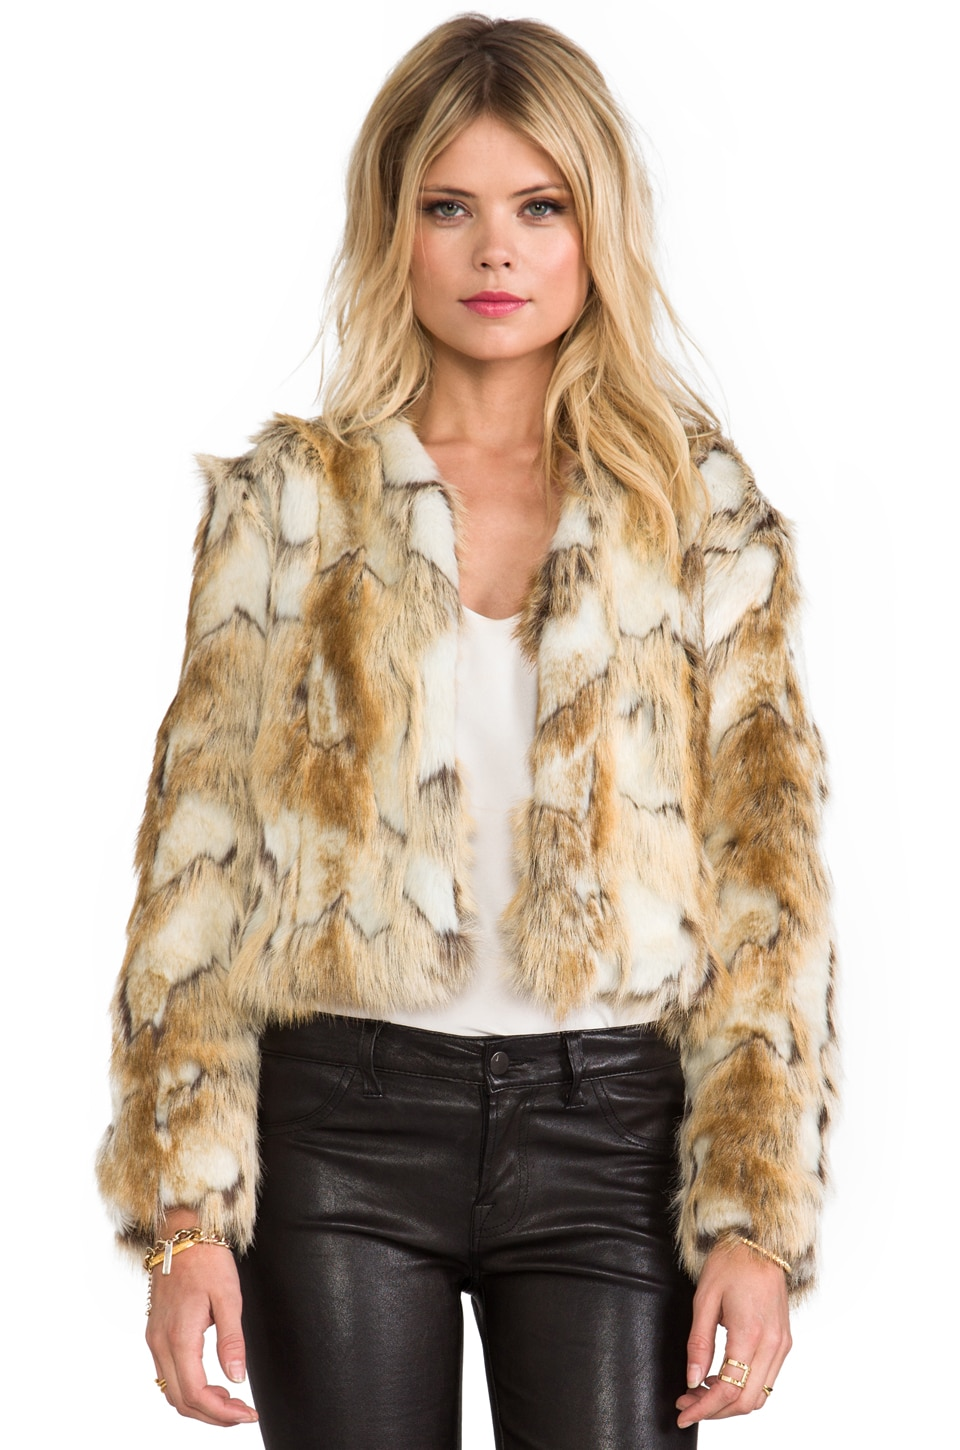 BSABLE Olivia Faux Fur Jacket in Brandy Gold